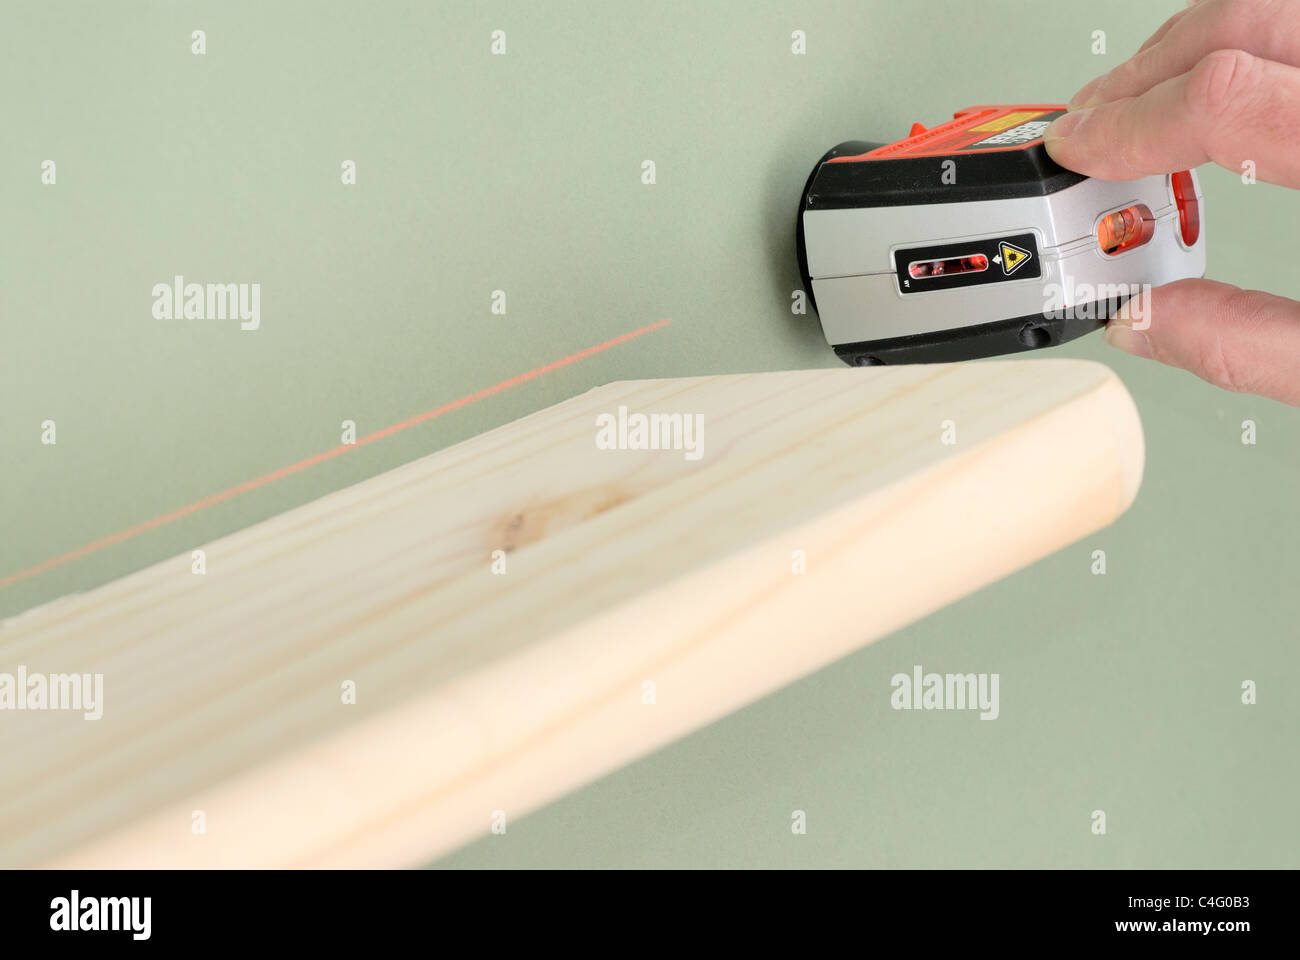 Using a laser spirit level  to check shelf alignment - Stock Image